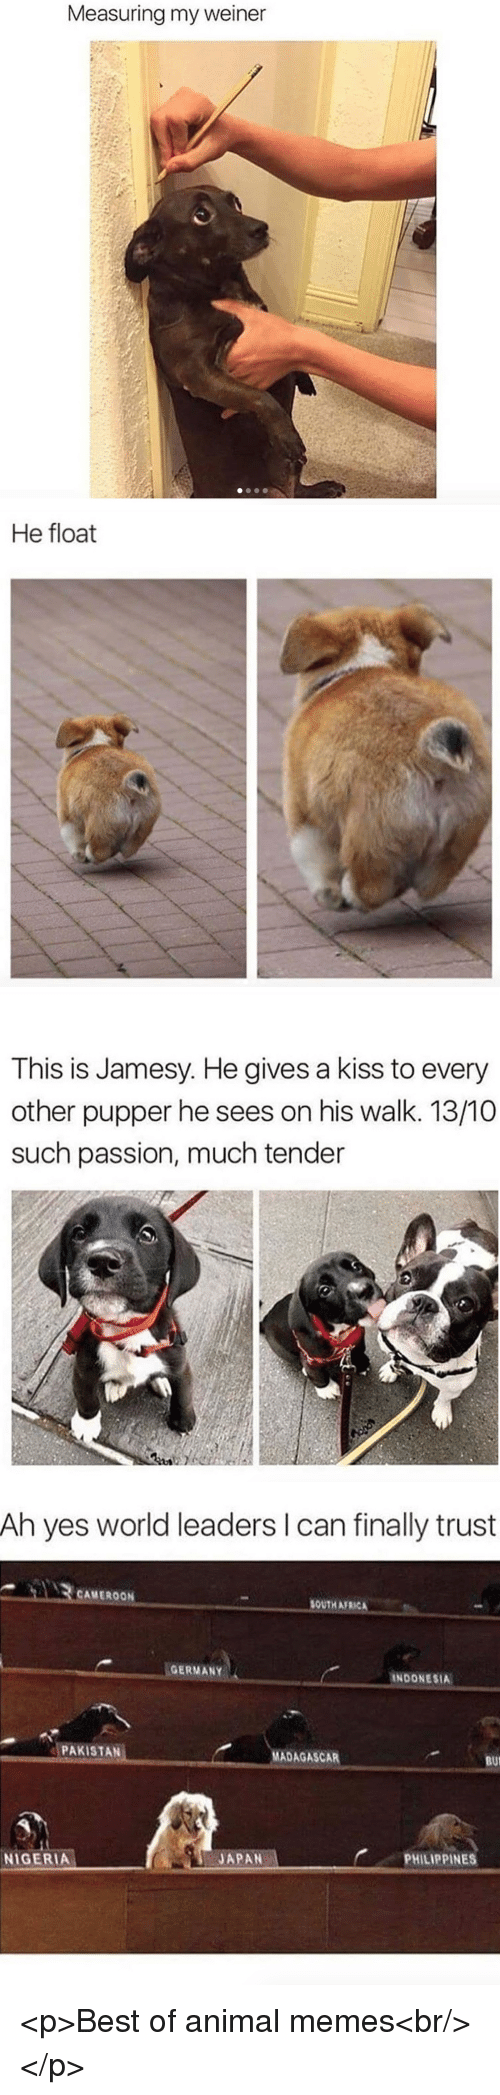 Bui: Measuring my weiner   He float   This is Jamesy. He gives a kiss to every  other pupper he sees on his walk. 13/10  such passion, much tender   Ah yes world leaders I can finally trust  CAMEROON  SOUTH AFRICA  GERMANY  INDONESIA  PAKISTAN  MADAGASCAR  BUI  PHILIPPINES  JAPAN-  NIGERIA <p>Best of animal memes<br/></p>